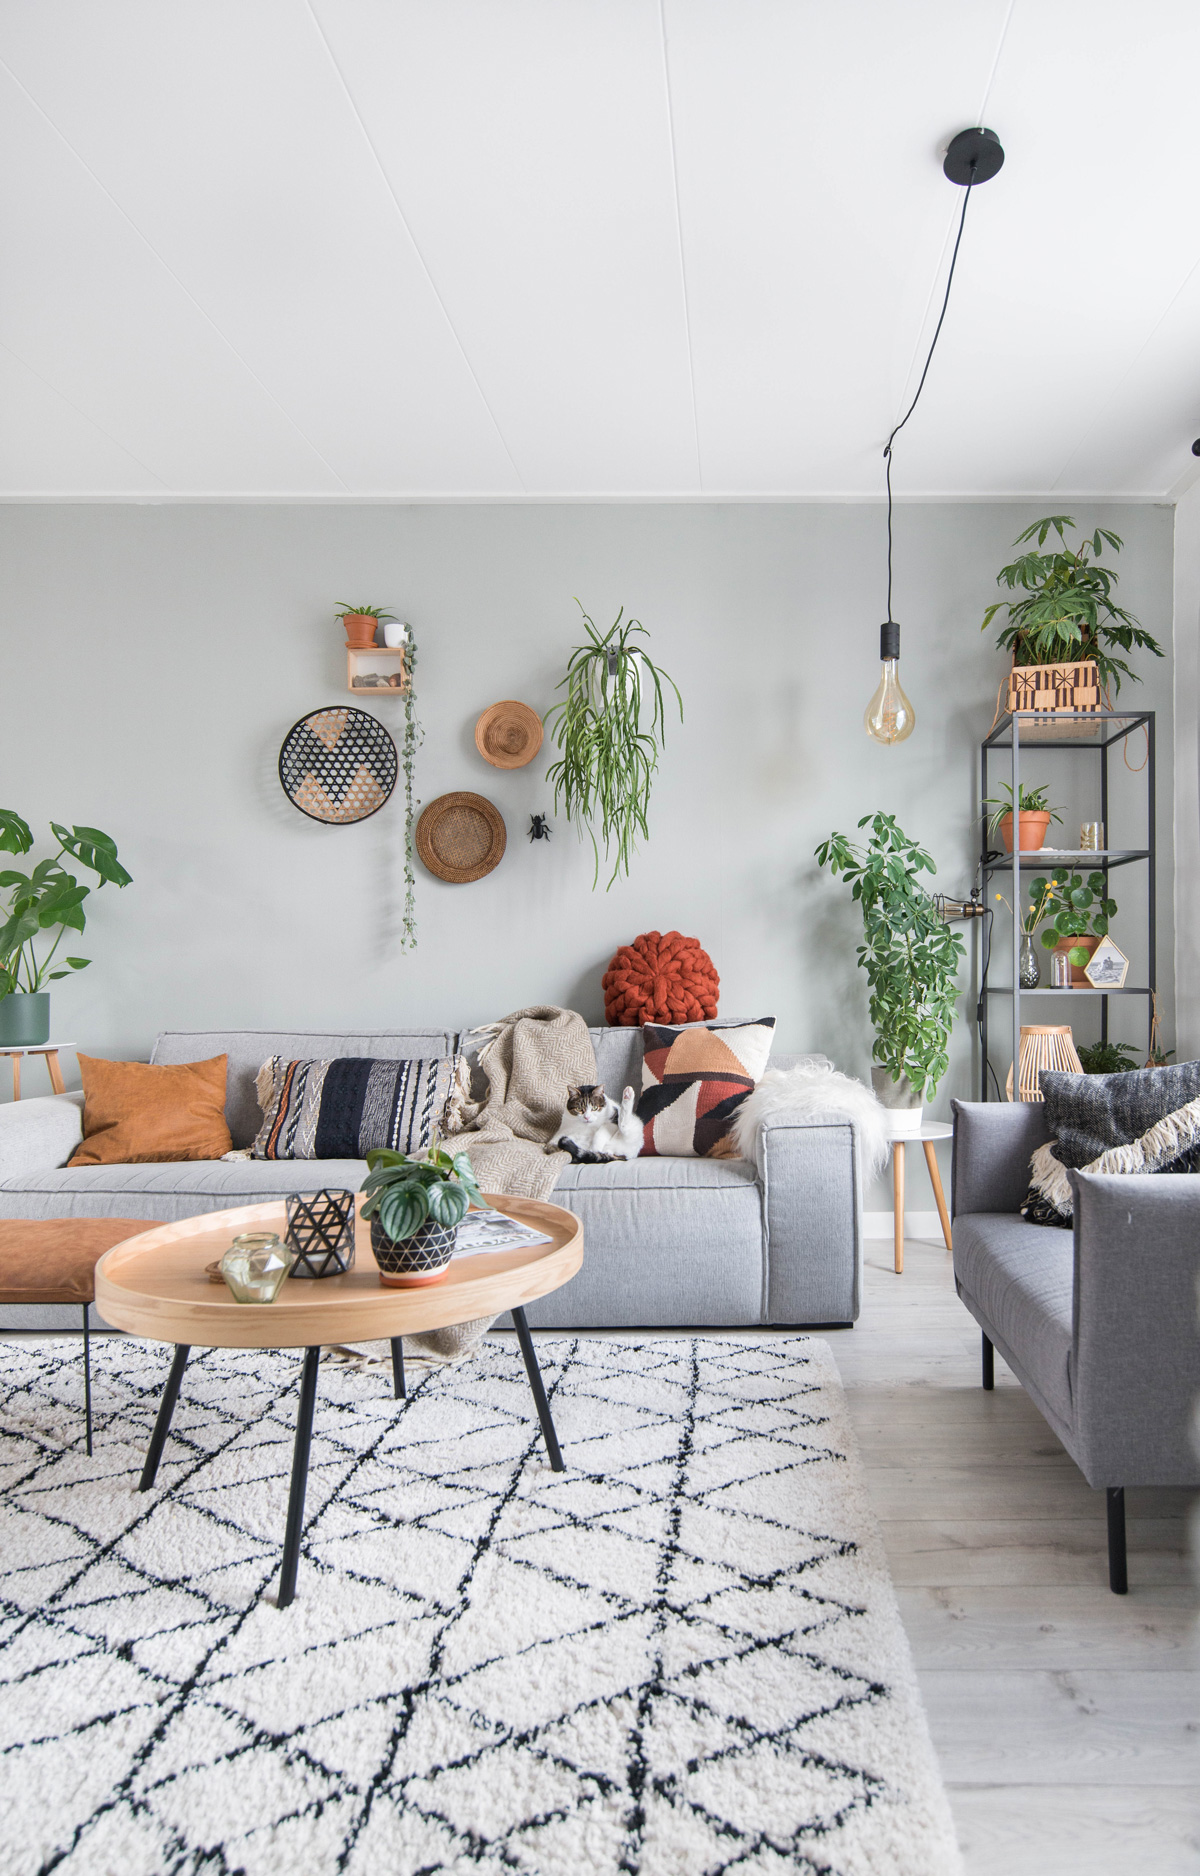 keeelly91blog makeover fundesign zuiver salontafel oaktray roest cognac woonkamer interieurinspiratie wonen urbanjungle